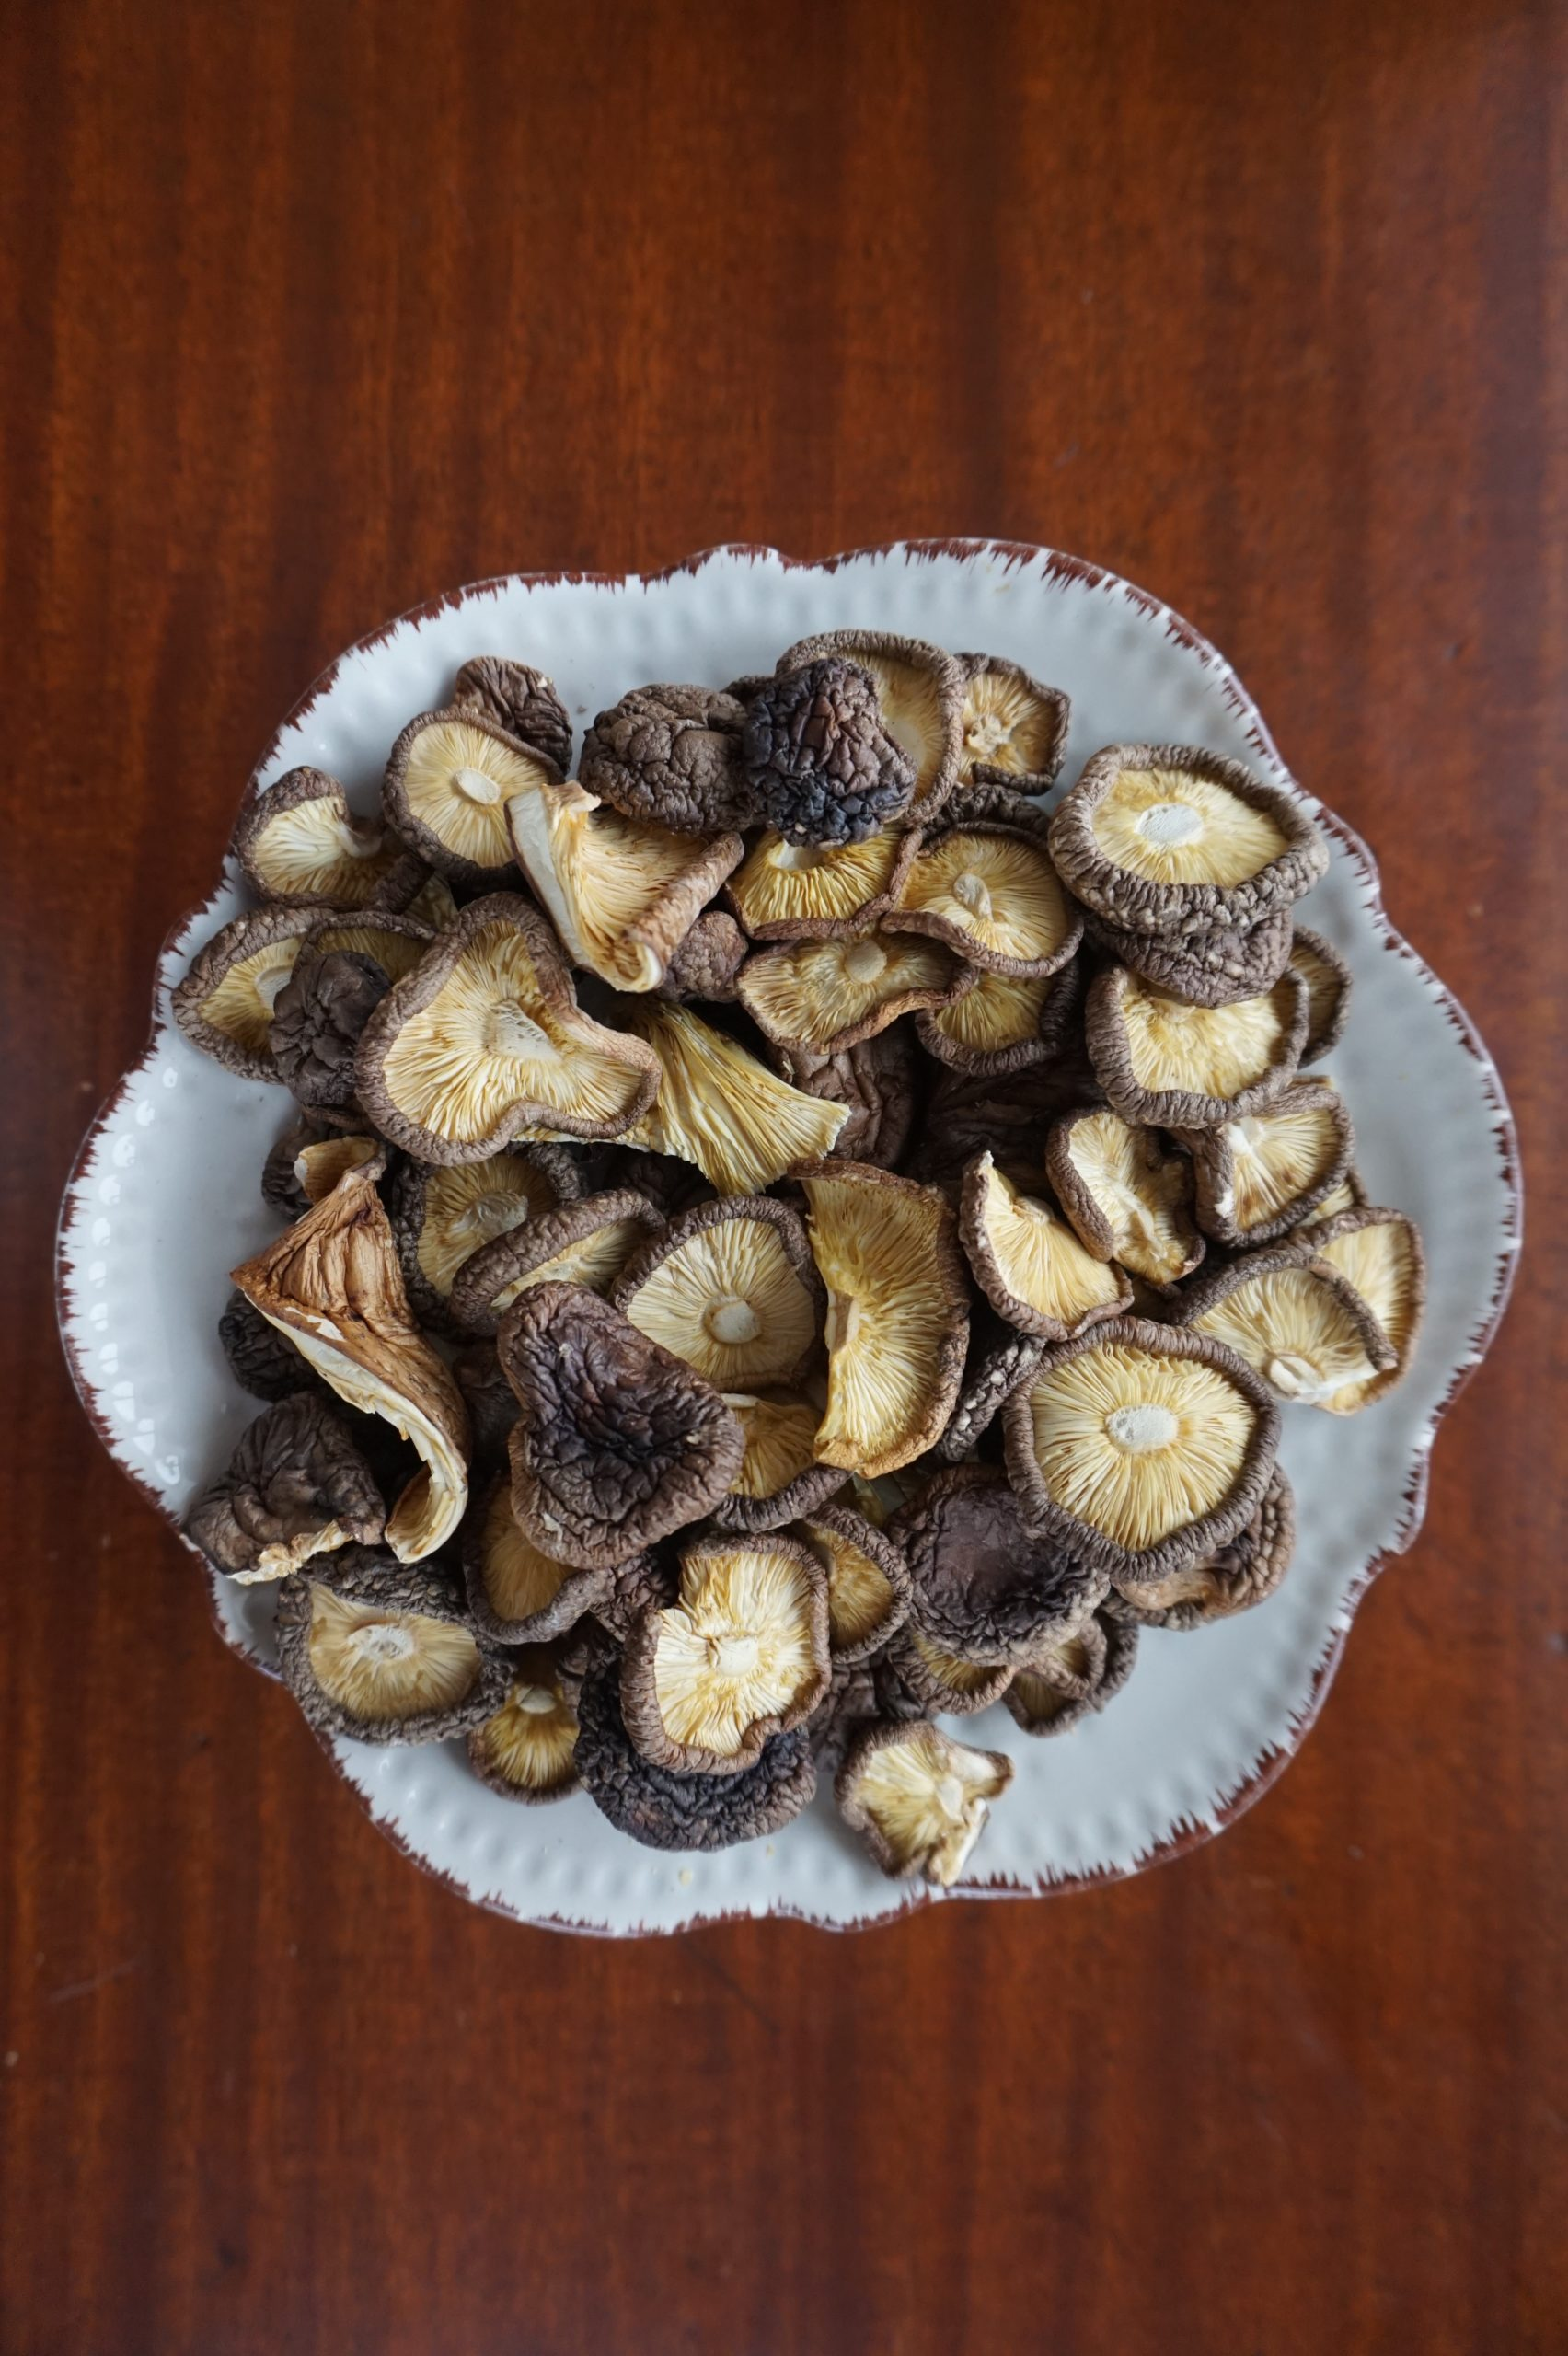 Dehydrating mushrooms is a good way to make a profit from less desirable mushrooms.